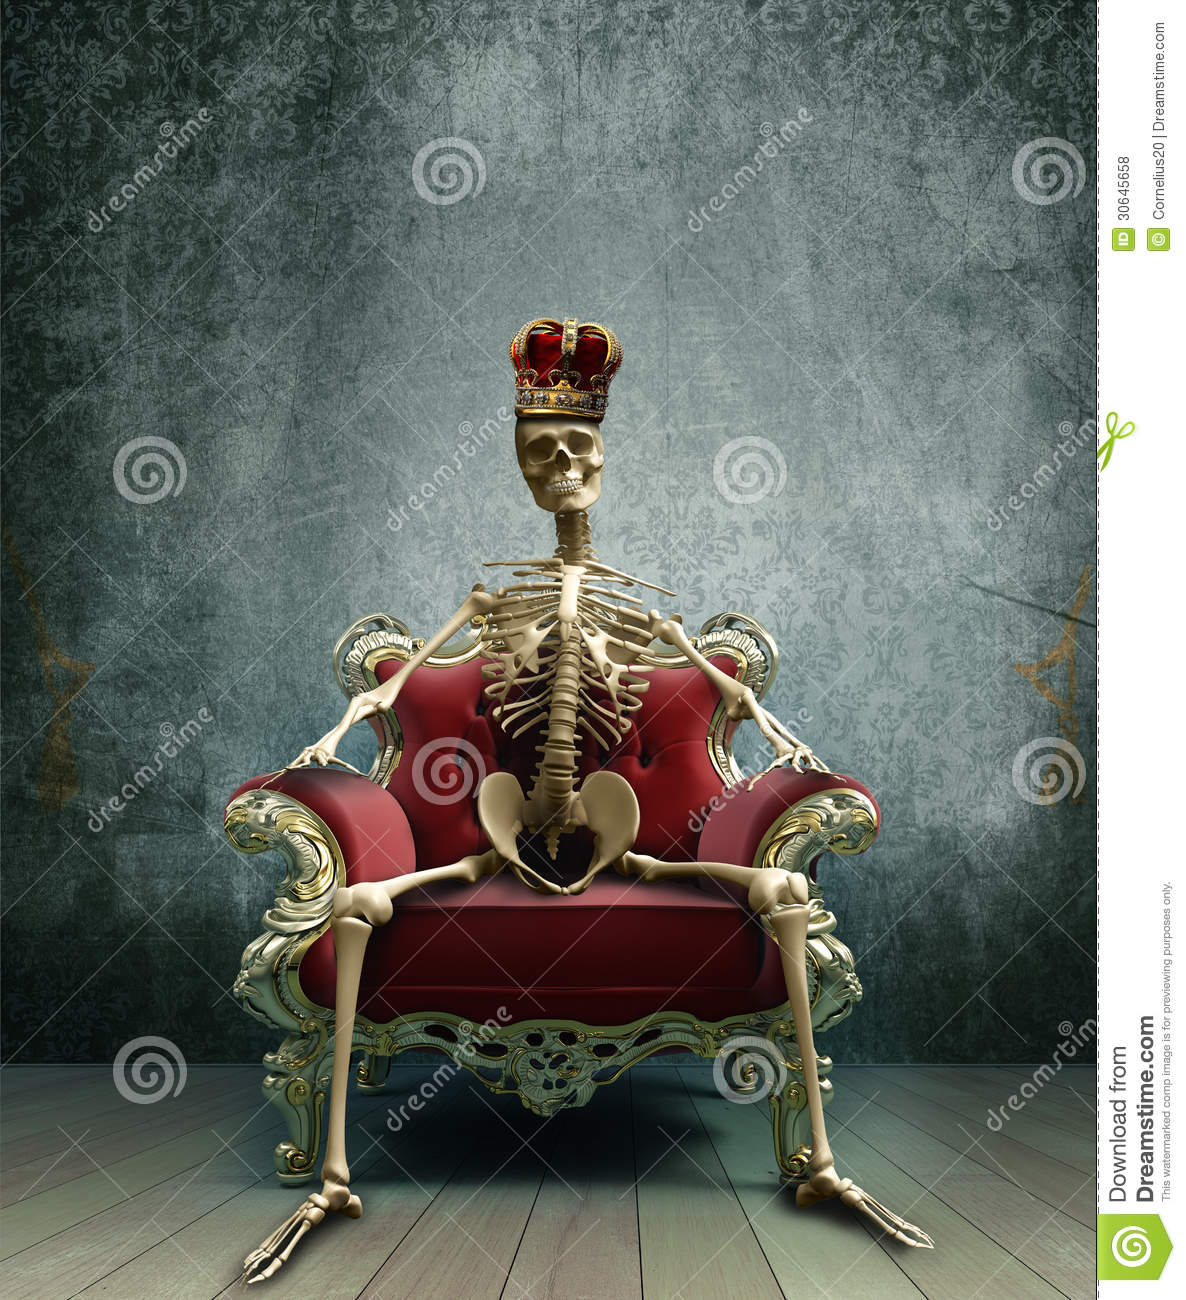 Skeleton King Royalty Free Stock Photos - Image: 30645658